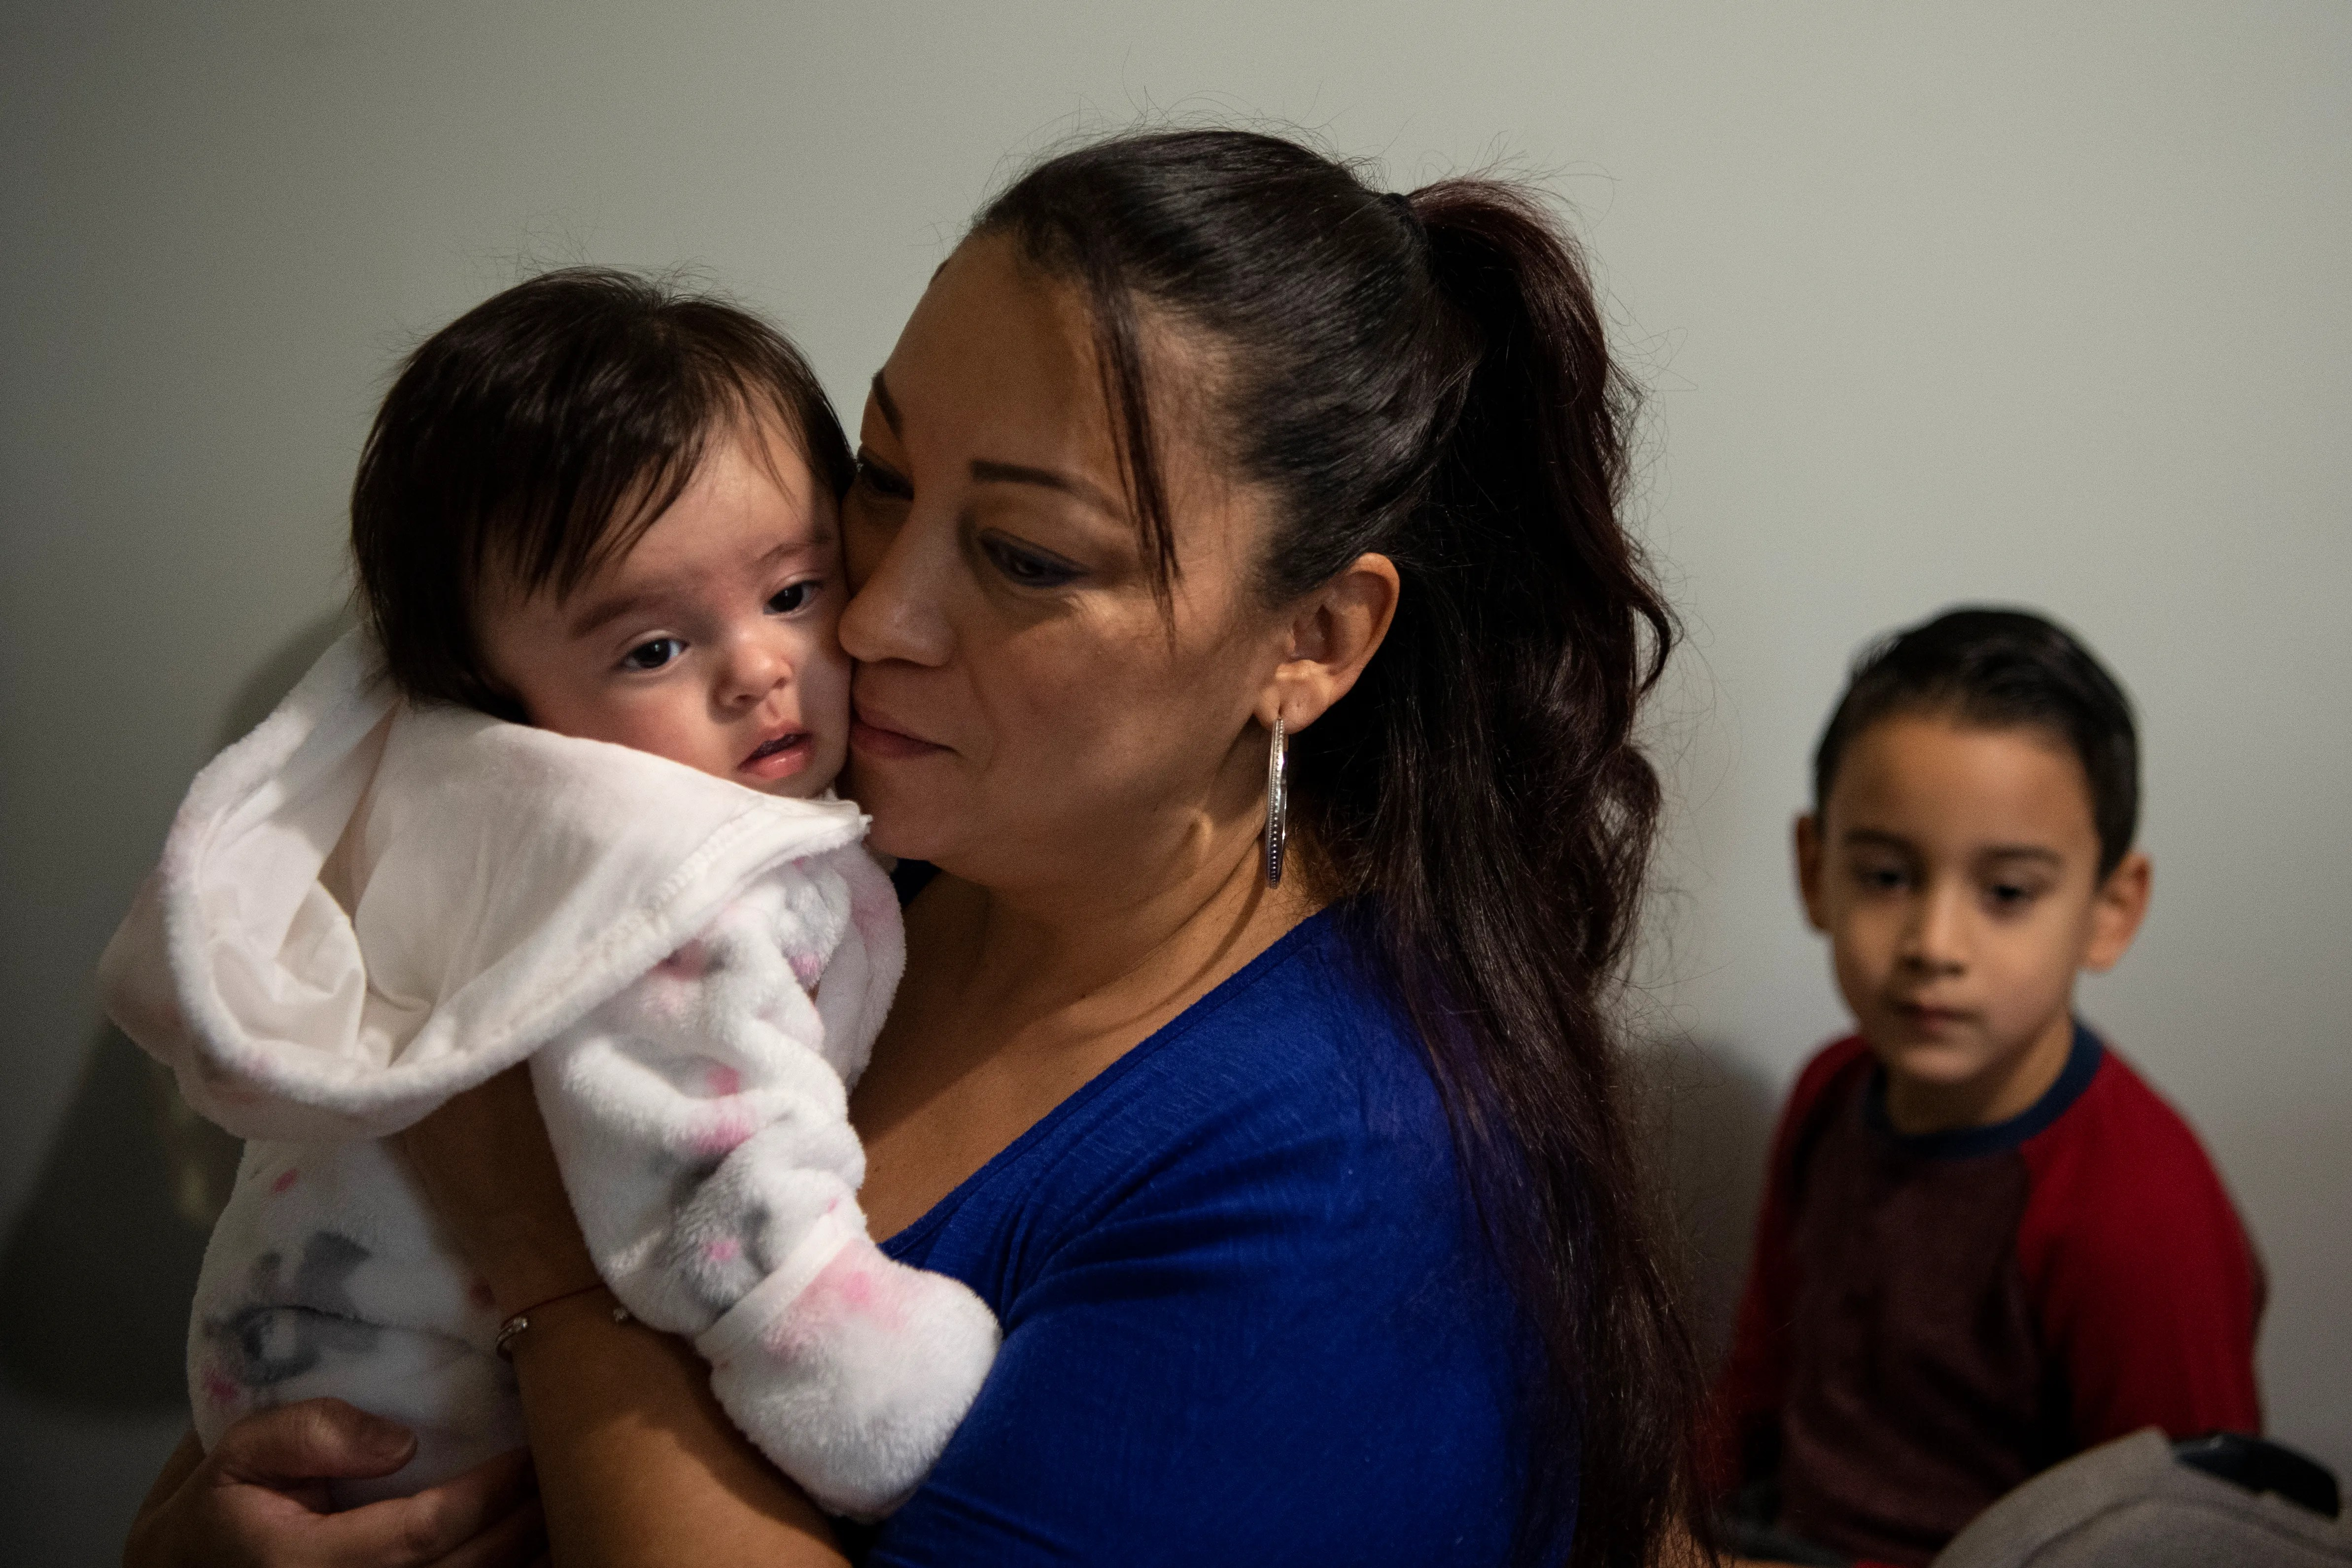 Luz Vanegas holds her granddaughter Emma at her home in North Bergen on Friday, November 13, 2020. (Right) Her son Jacob Bravo, 6. Vanegas' life turned upside down this summer when her daughter, Estefania, gave birth to her first grandchild and suffered a heart attack during delivery leaving her in a coma. Vanegas not only worried about her daughter, but also began to take care of her new granddaughter, Emma, while her father works and they figure out what happened to Estafania. Meanwhile, Vanegas is also facing deportation.